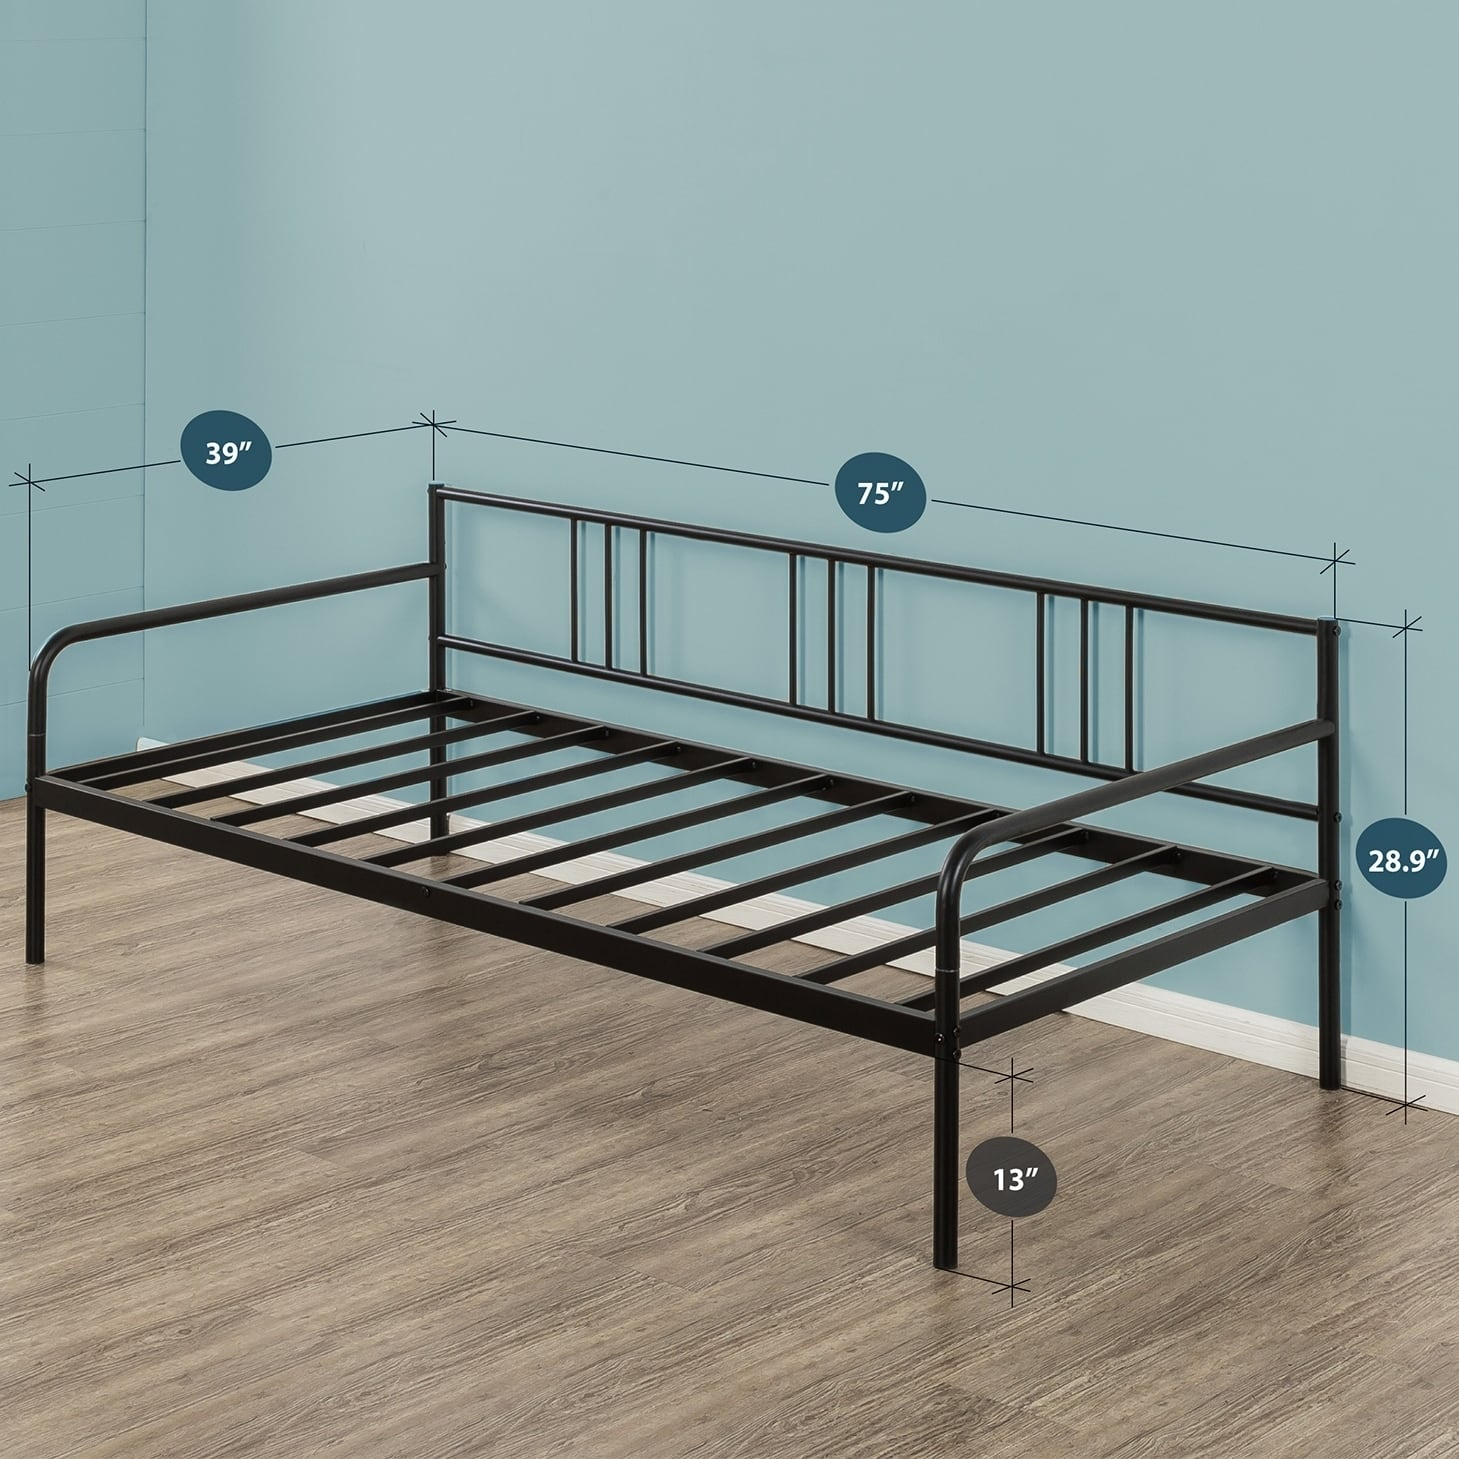 Bed Frames For Less Overstock